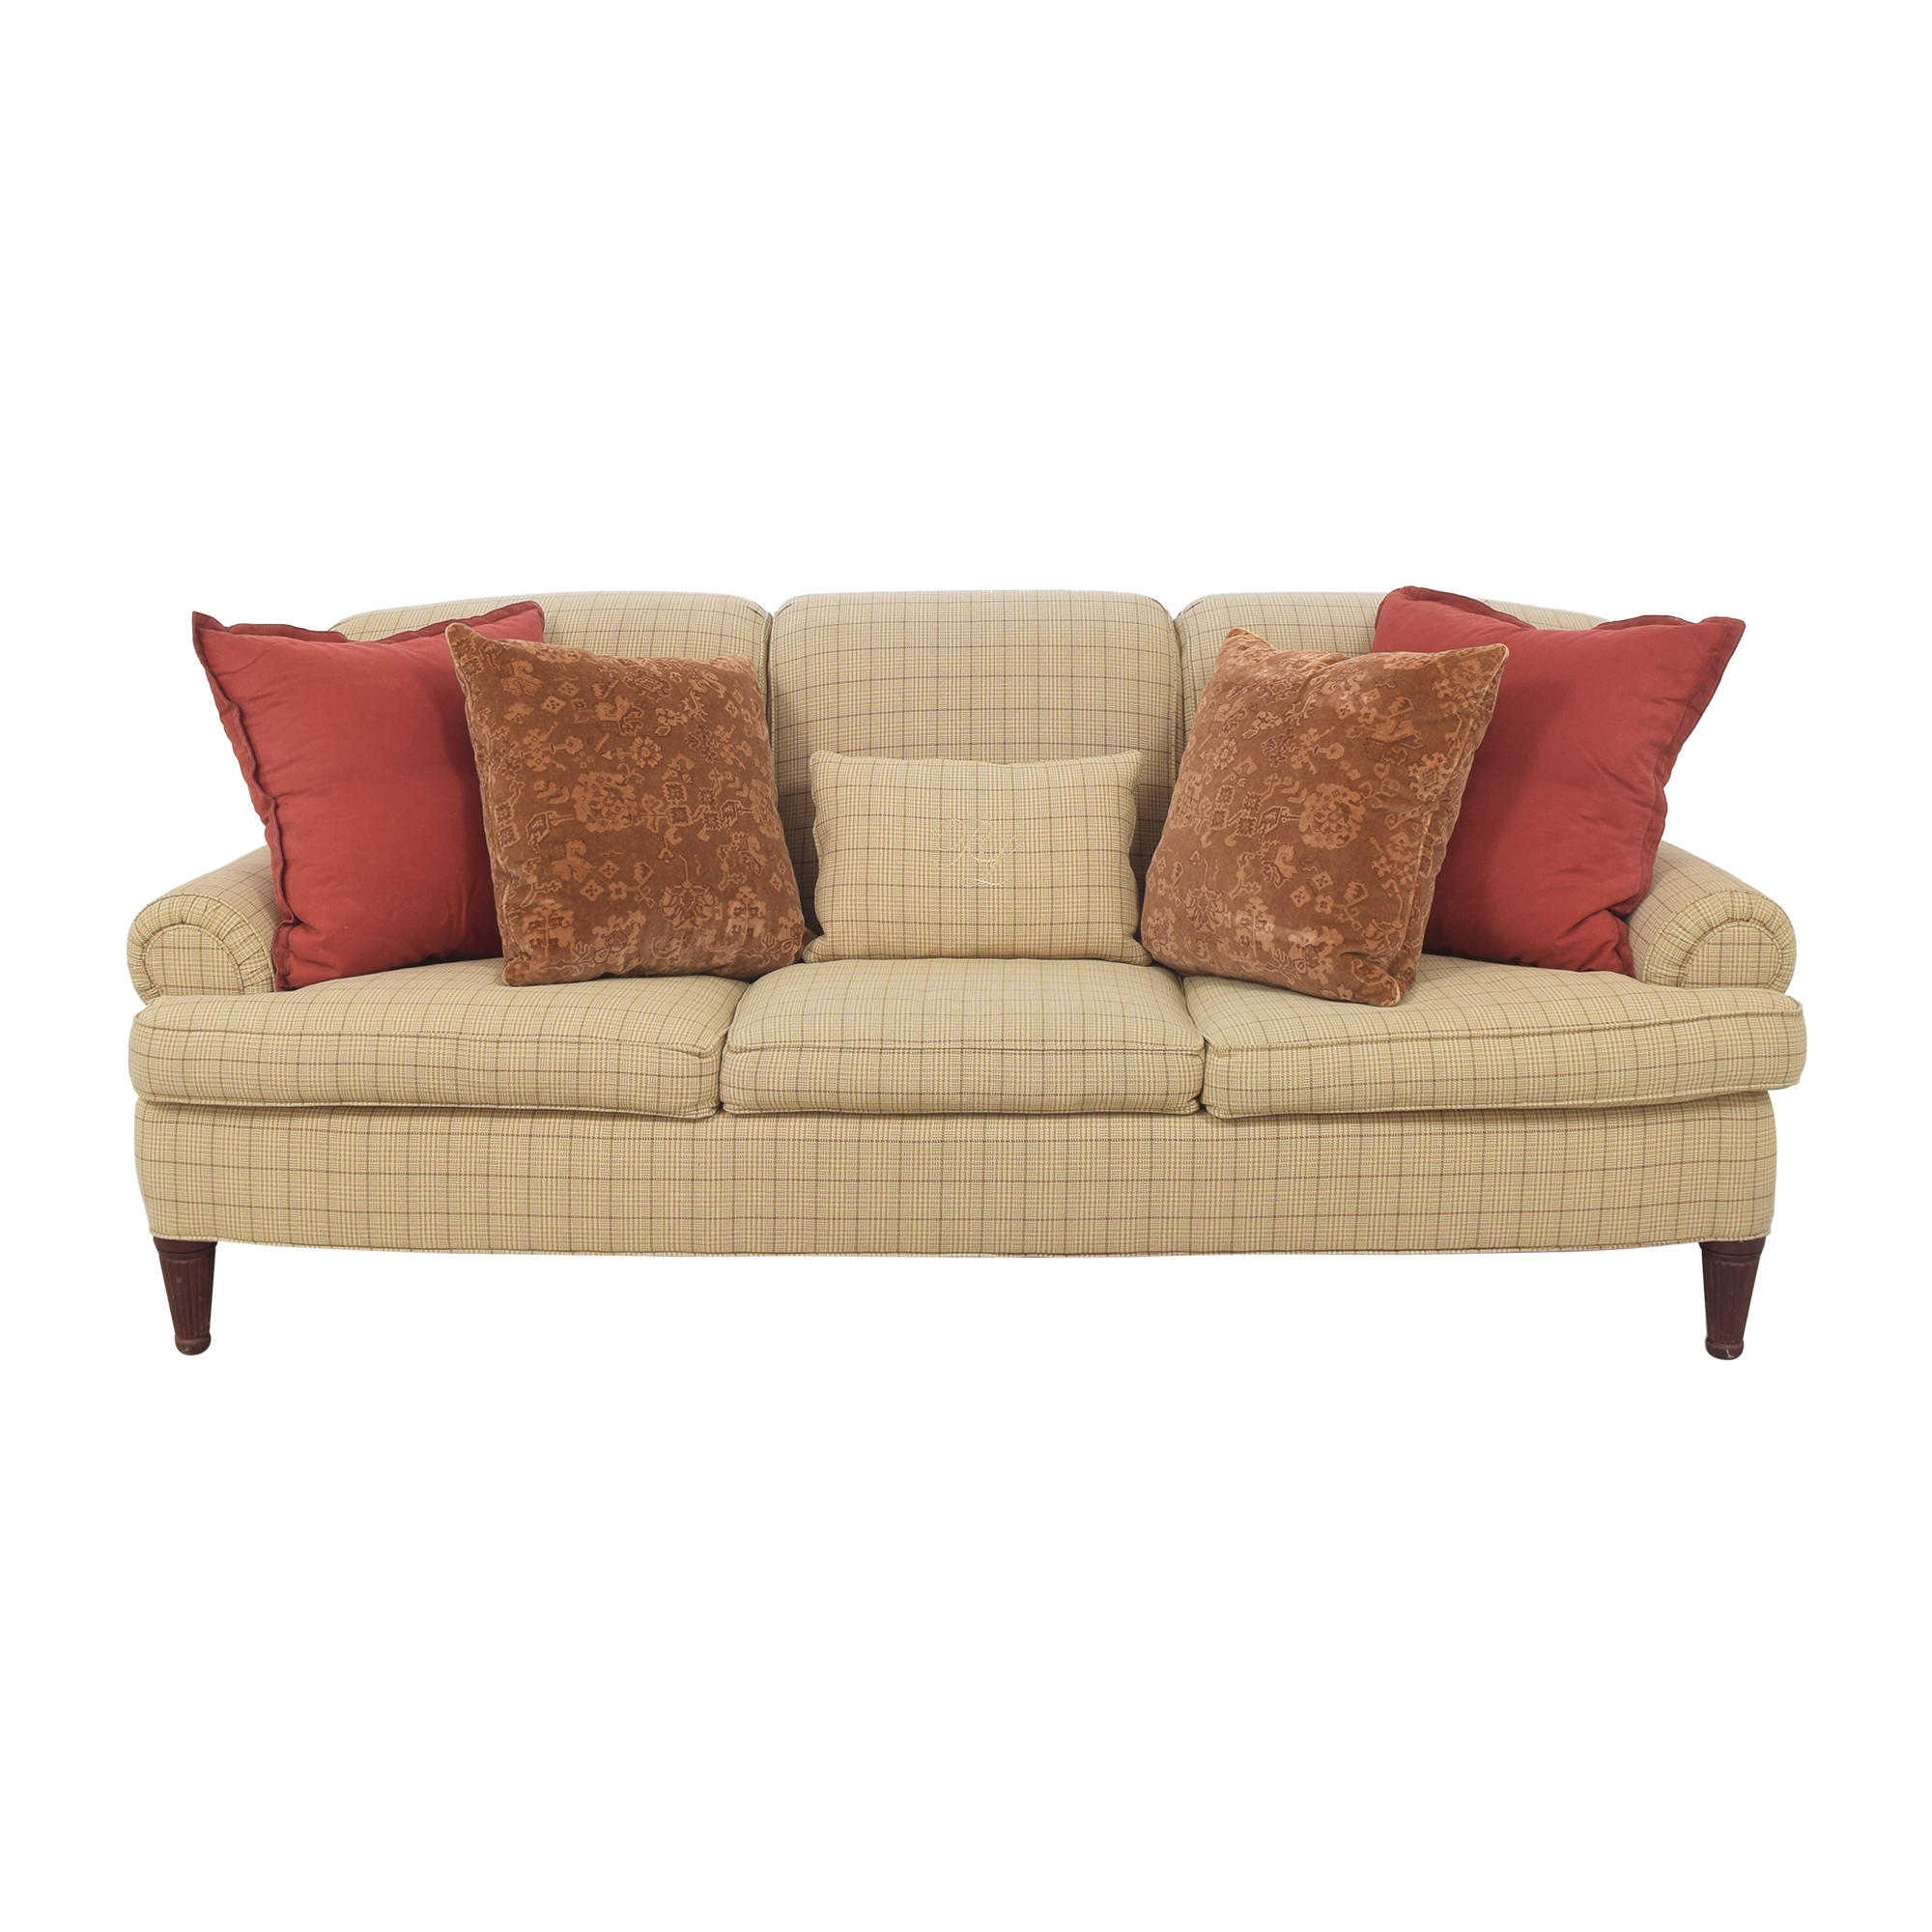 Ralph Lauren Home Glen Plaid Sofa by Henredon  Ralph Lauren Home